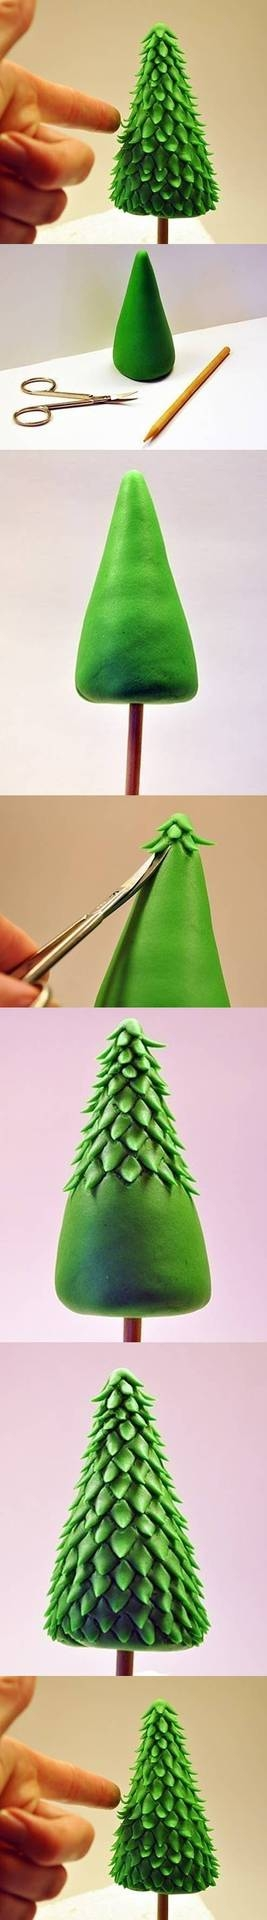 DIY Clay Christmas Tree